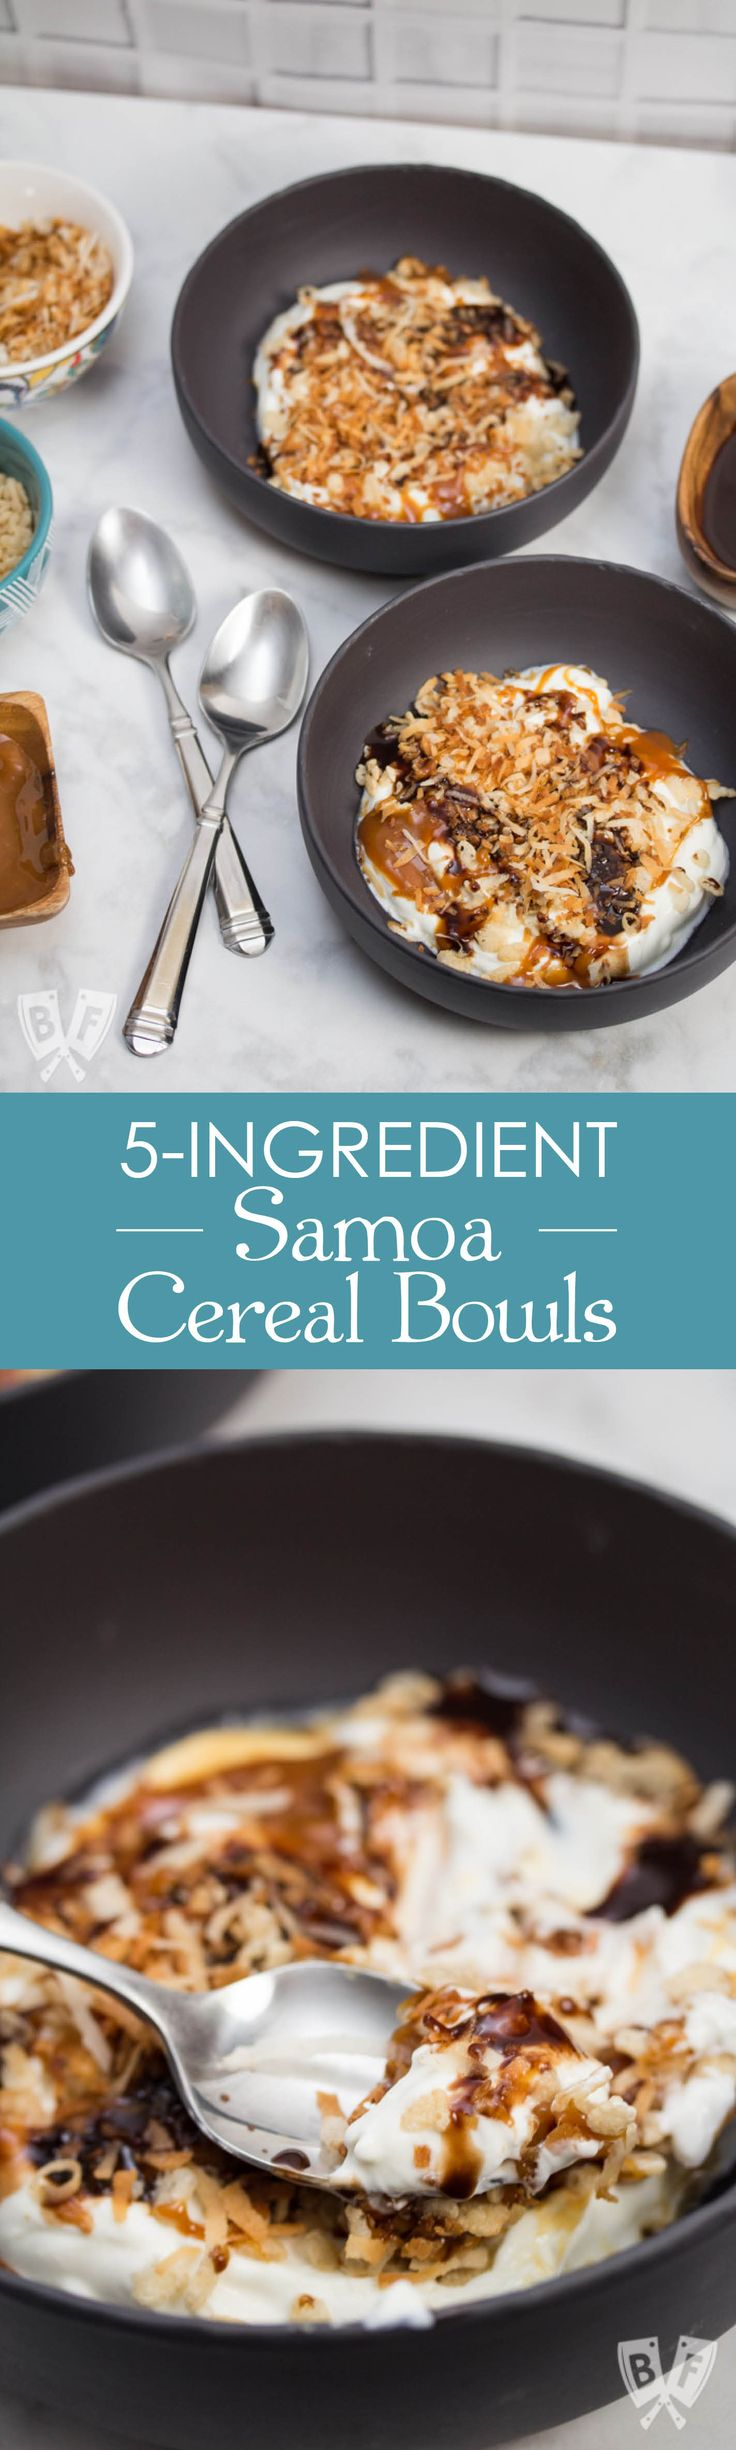 5-Ingredient Samoa Cereal Bowls: This quick & easy 5-ingredient Greek yogurt cereal bowl features toasted coconut + Rice Krispies - an ode to one of my favorite cookies, the Samoa! #ReimagineYourCereal #CollectiveBias #ad